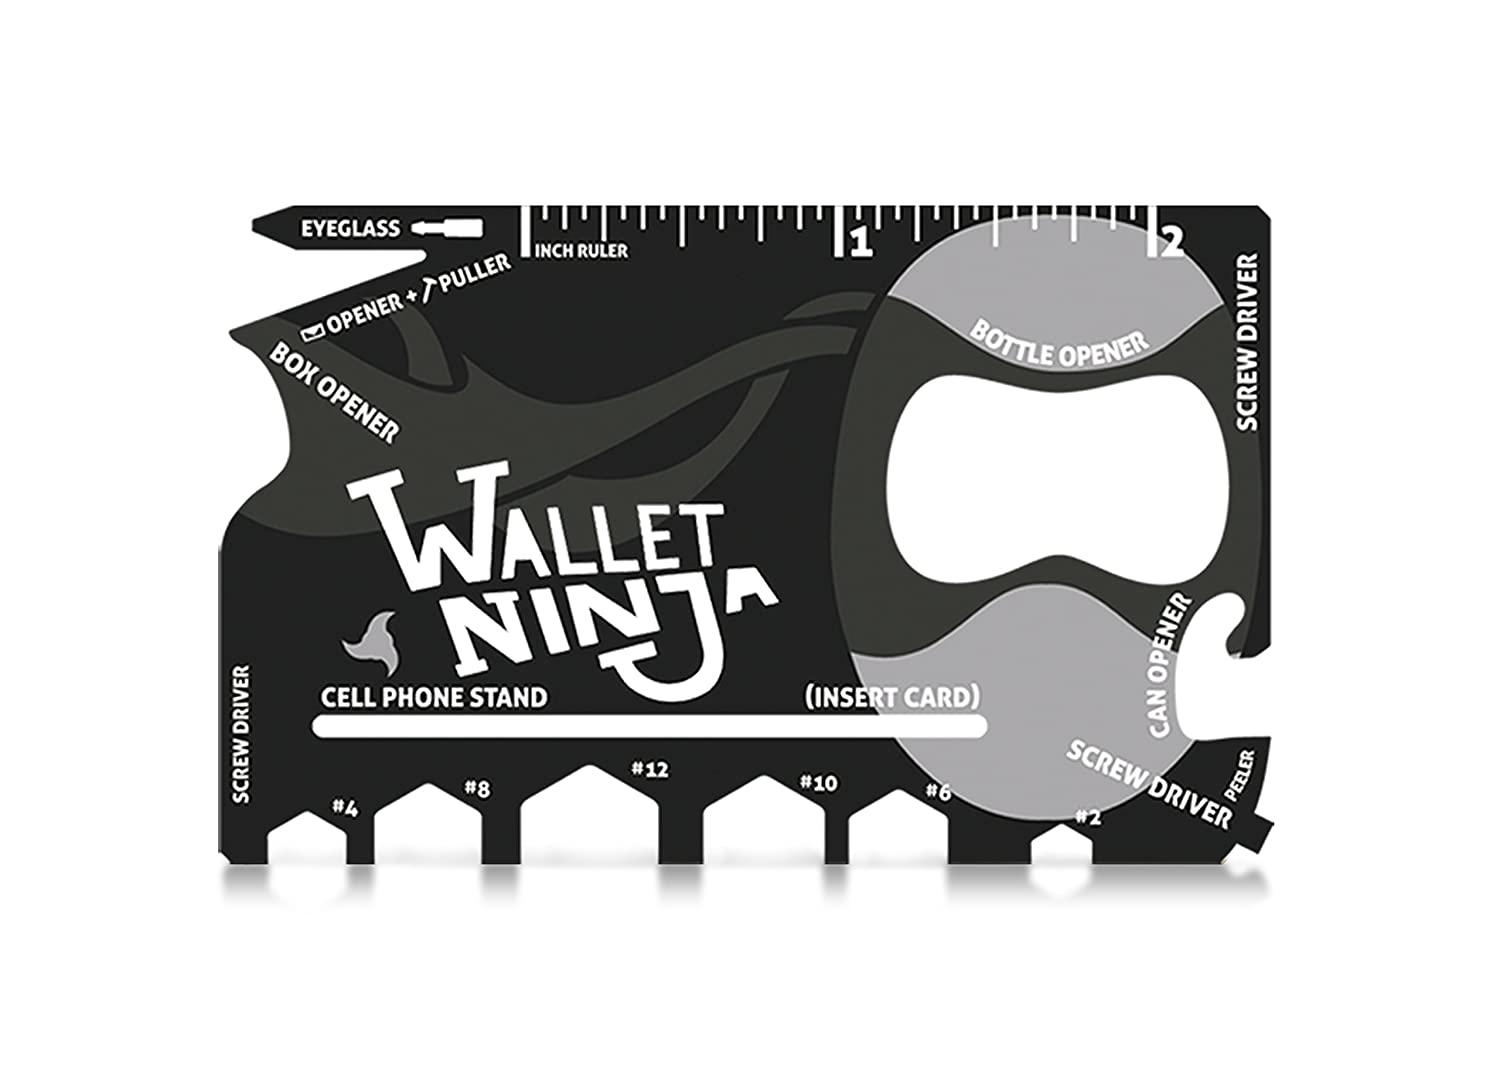 photograph regarding Printable Survival Cards identify Wallet Ninja- 18 within 1 Credit history Card Sized Mulool (#1 Simplest Endorsing within just the International) (Black)